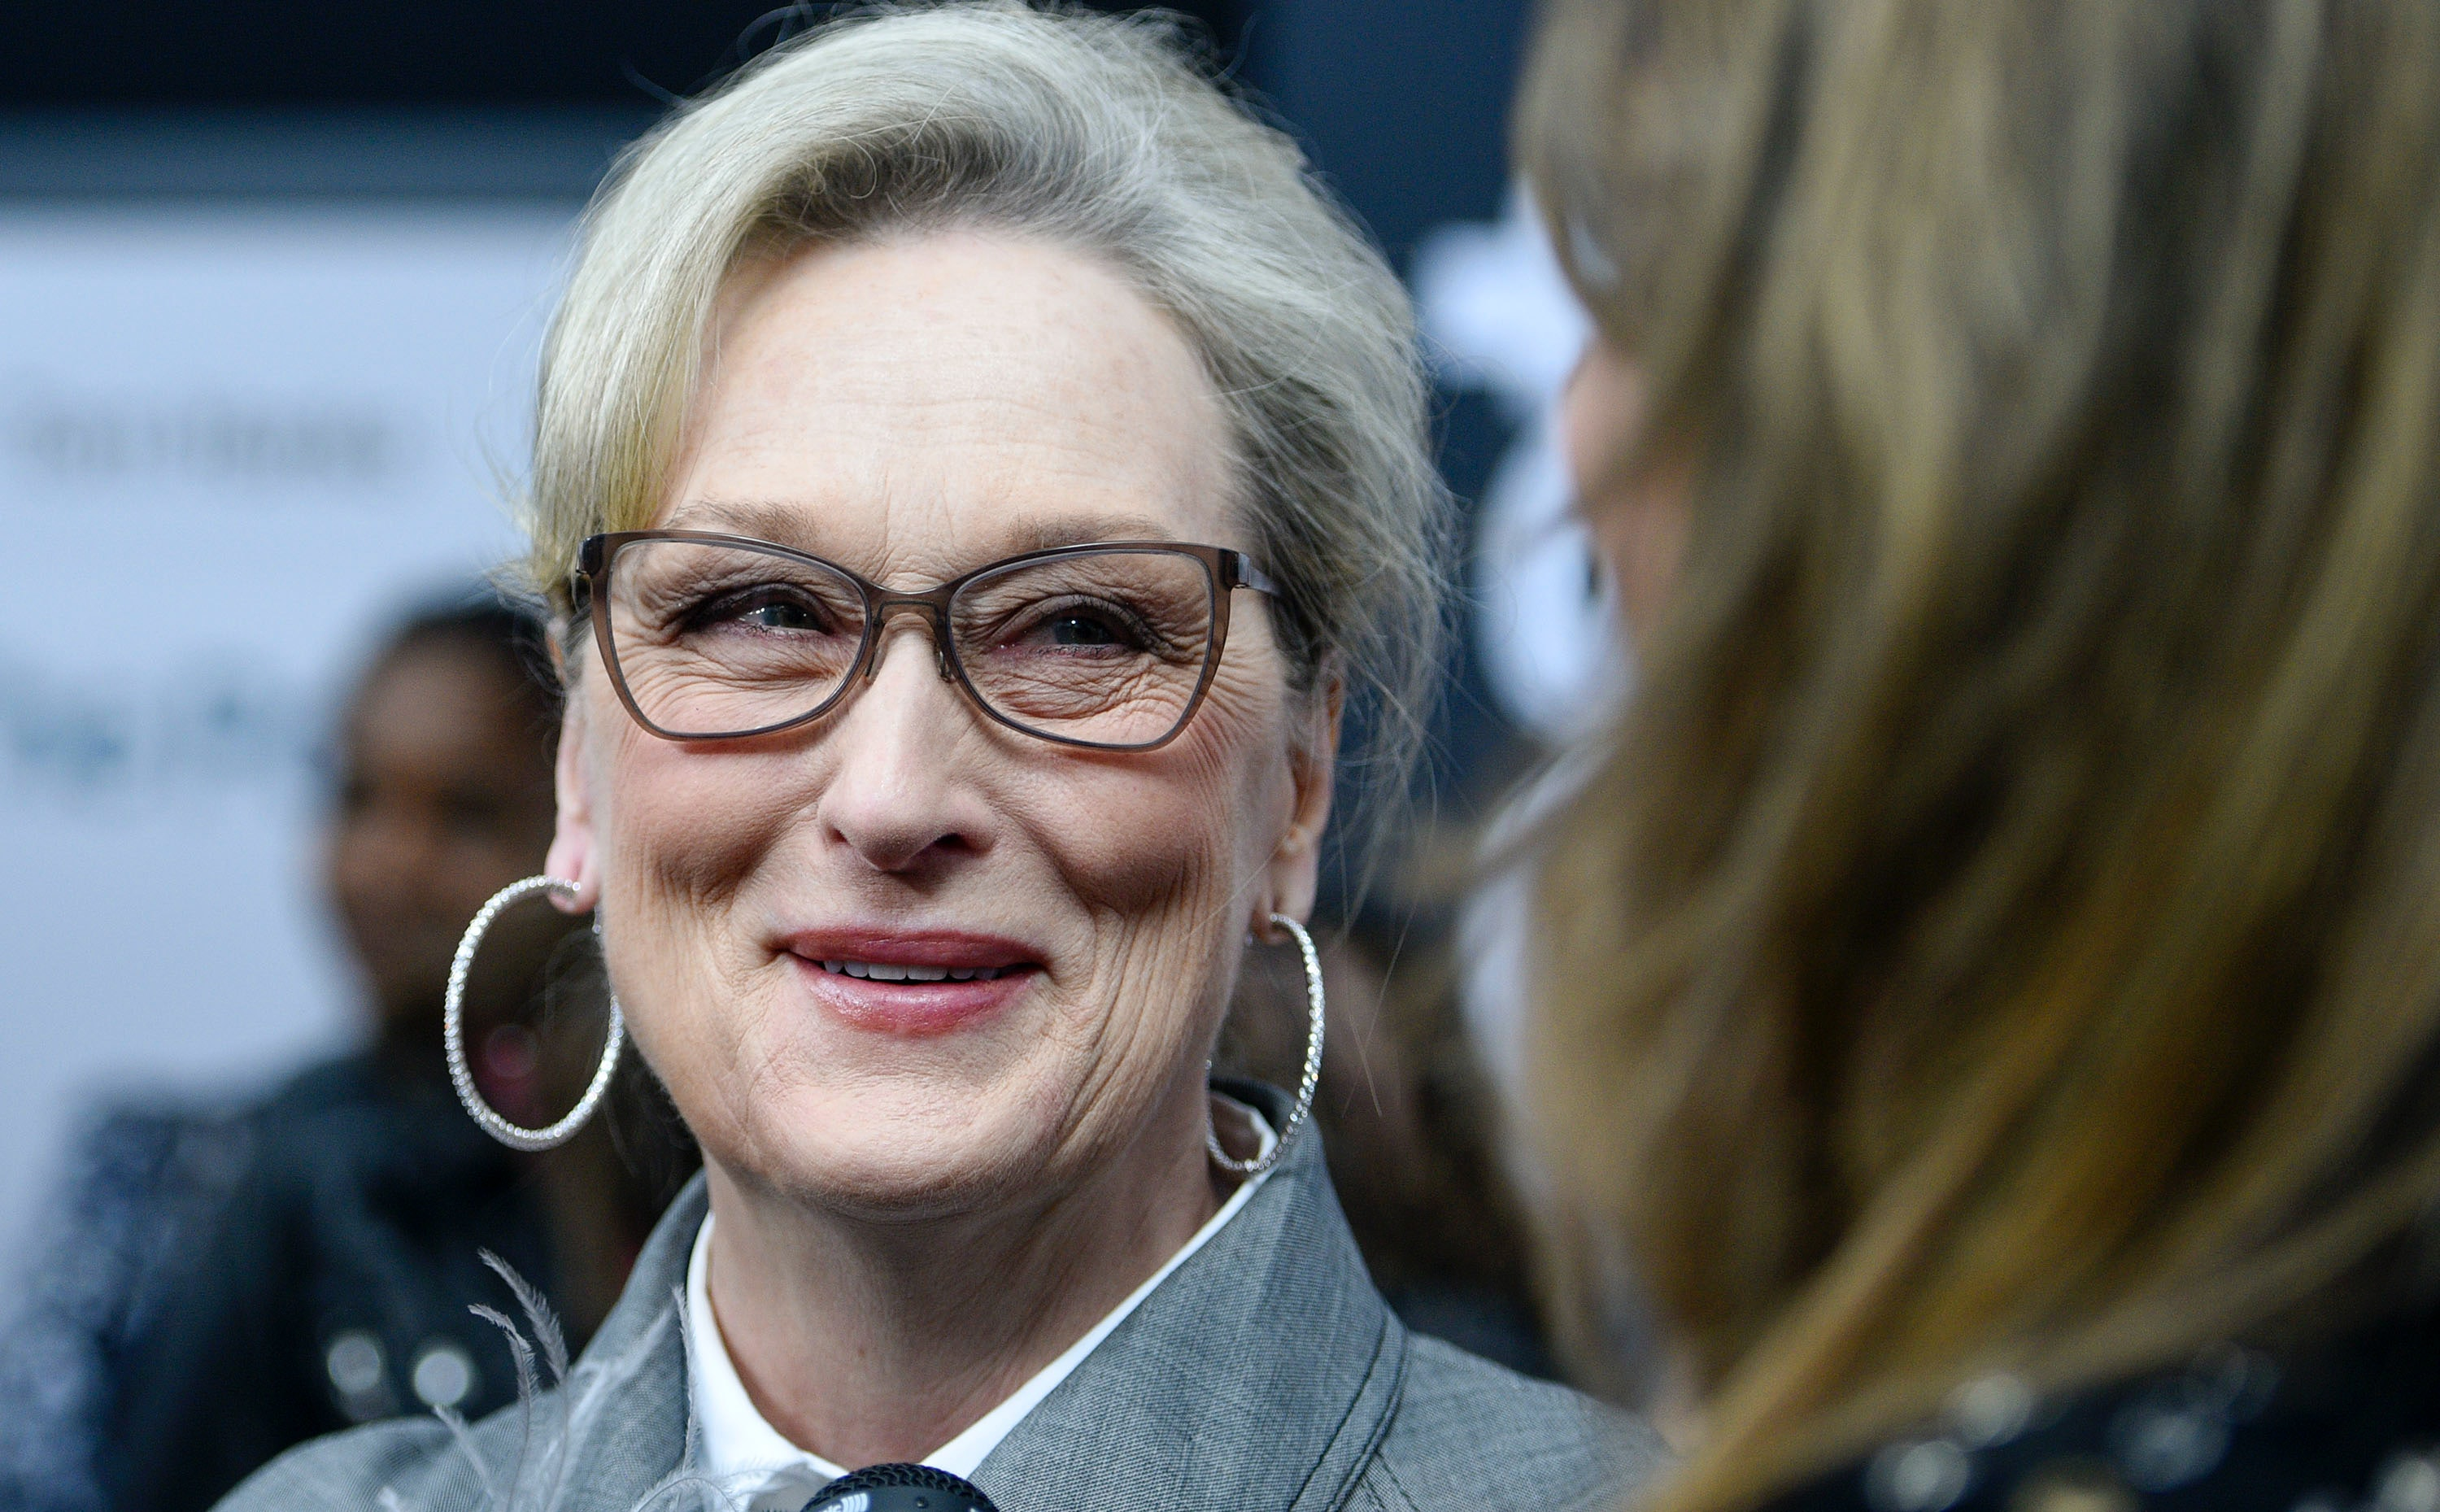 Posters Against Actress Meryl Streep, Claiming